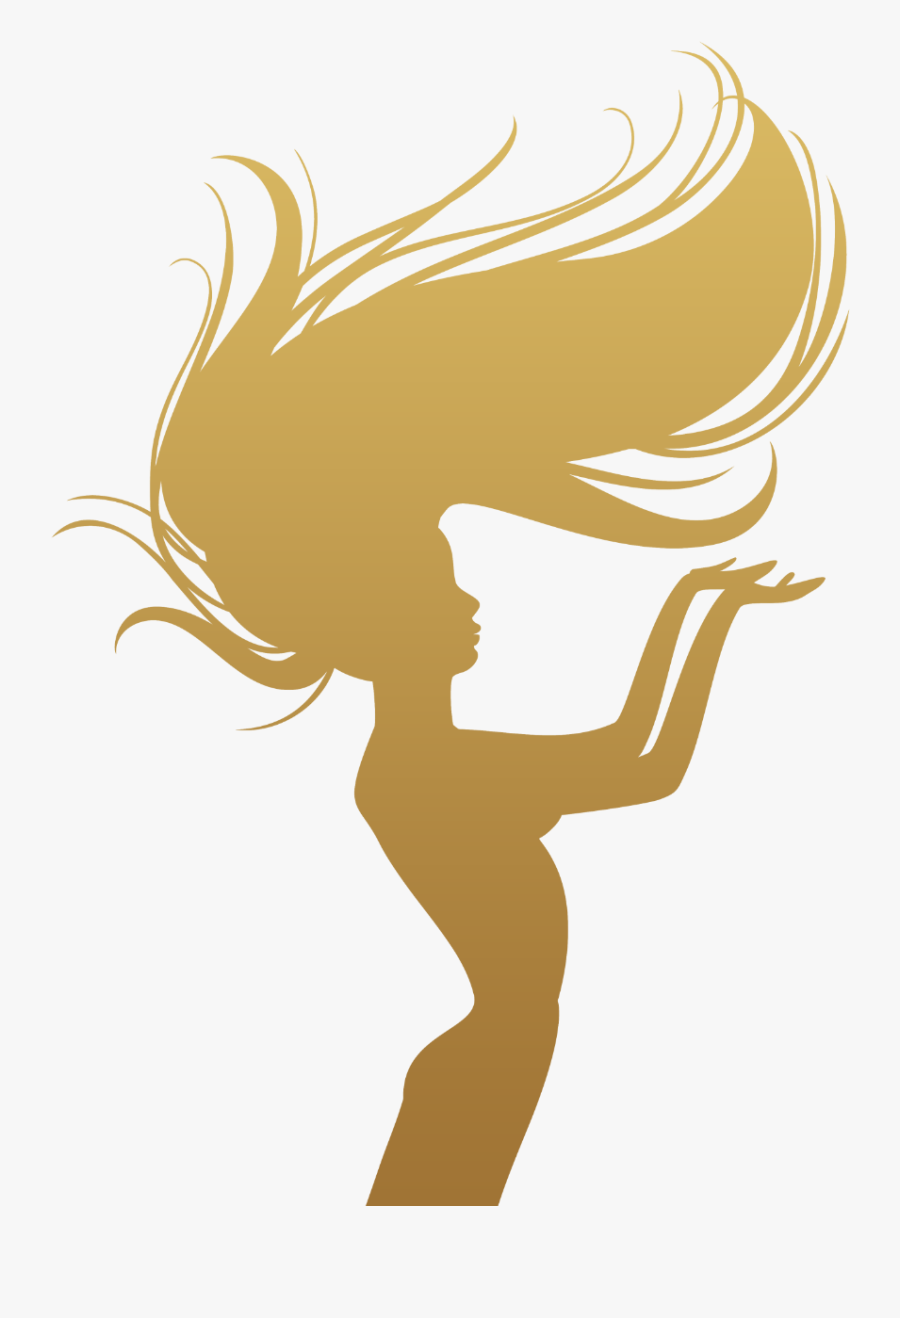 Hair Logo Ideas – Makes That Logo Stand Out From the Crowd